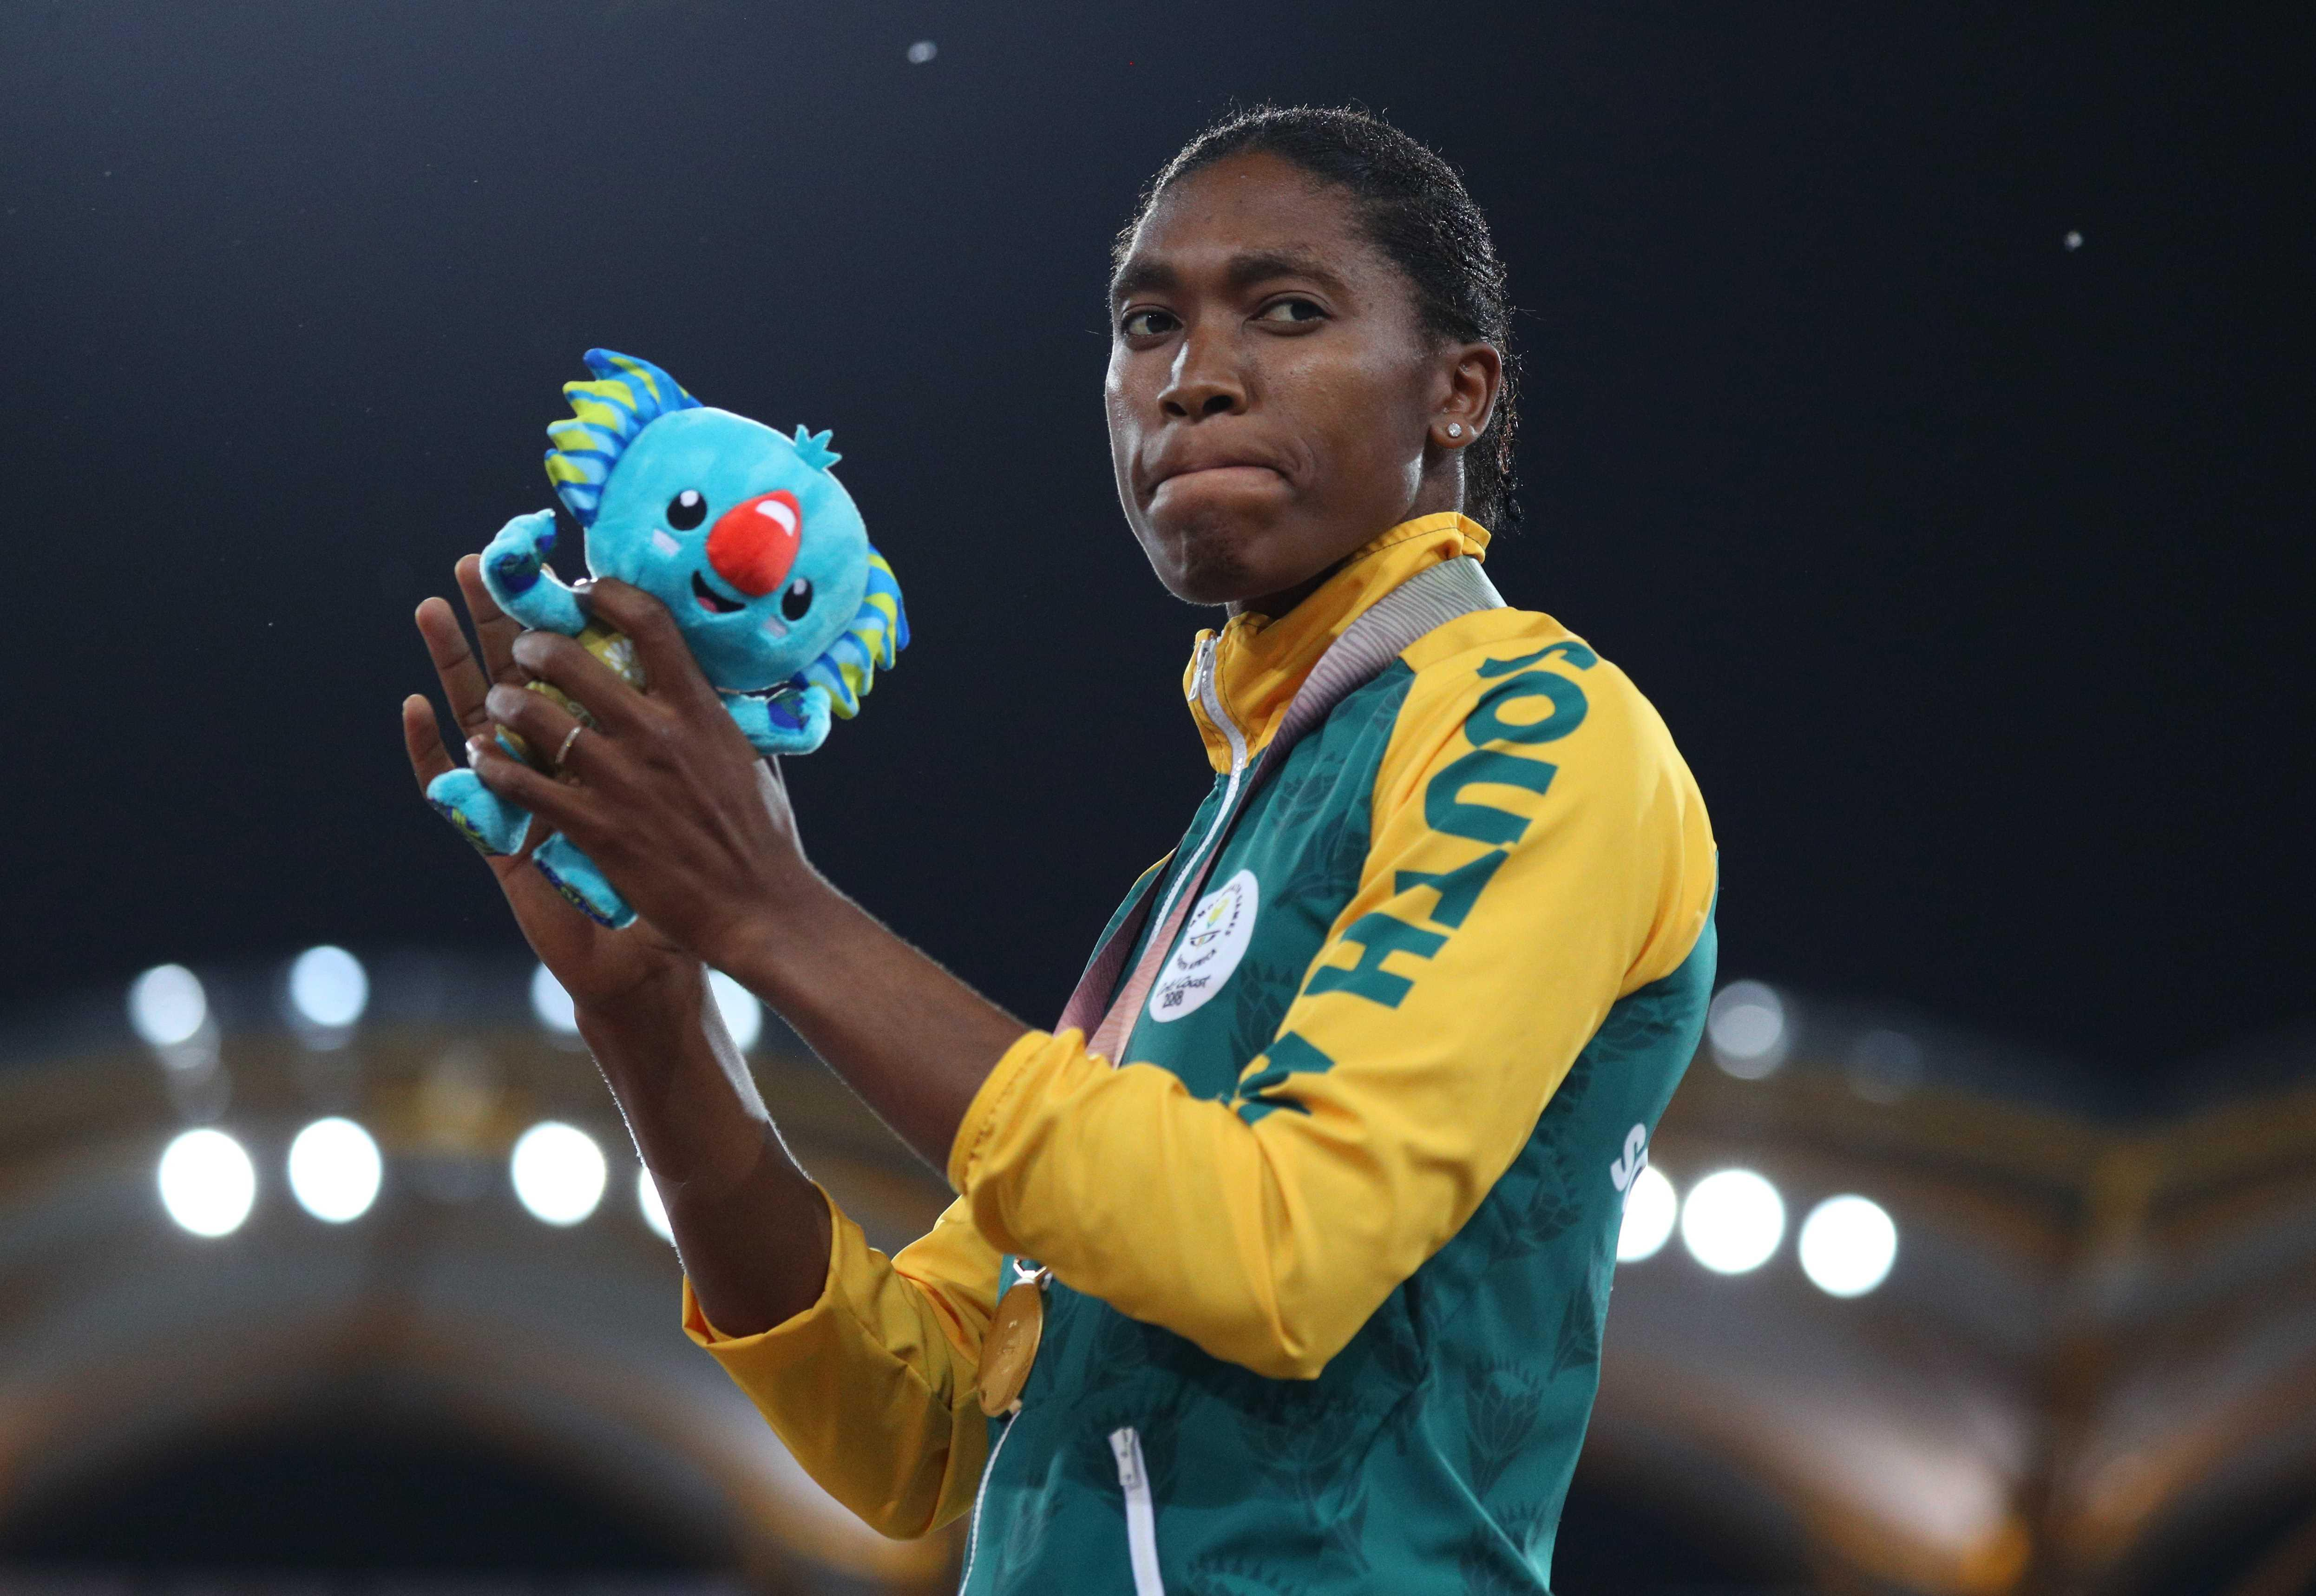 Semenya won Commonwealth 800m and 1500m gold at this month's championships in Gold Coast